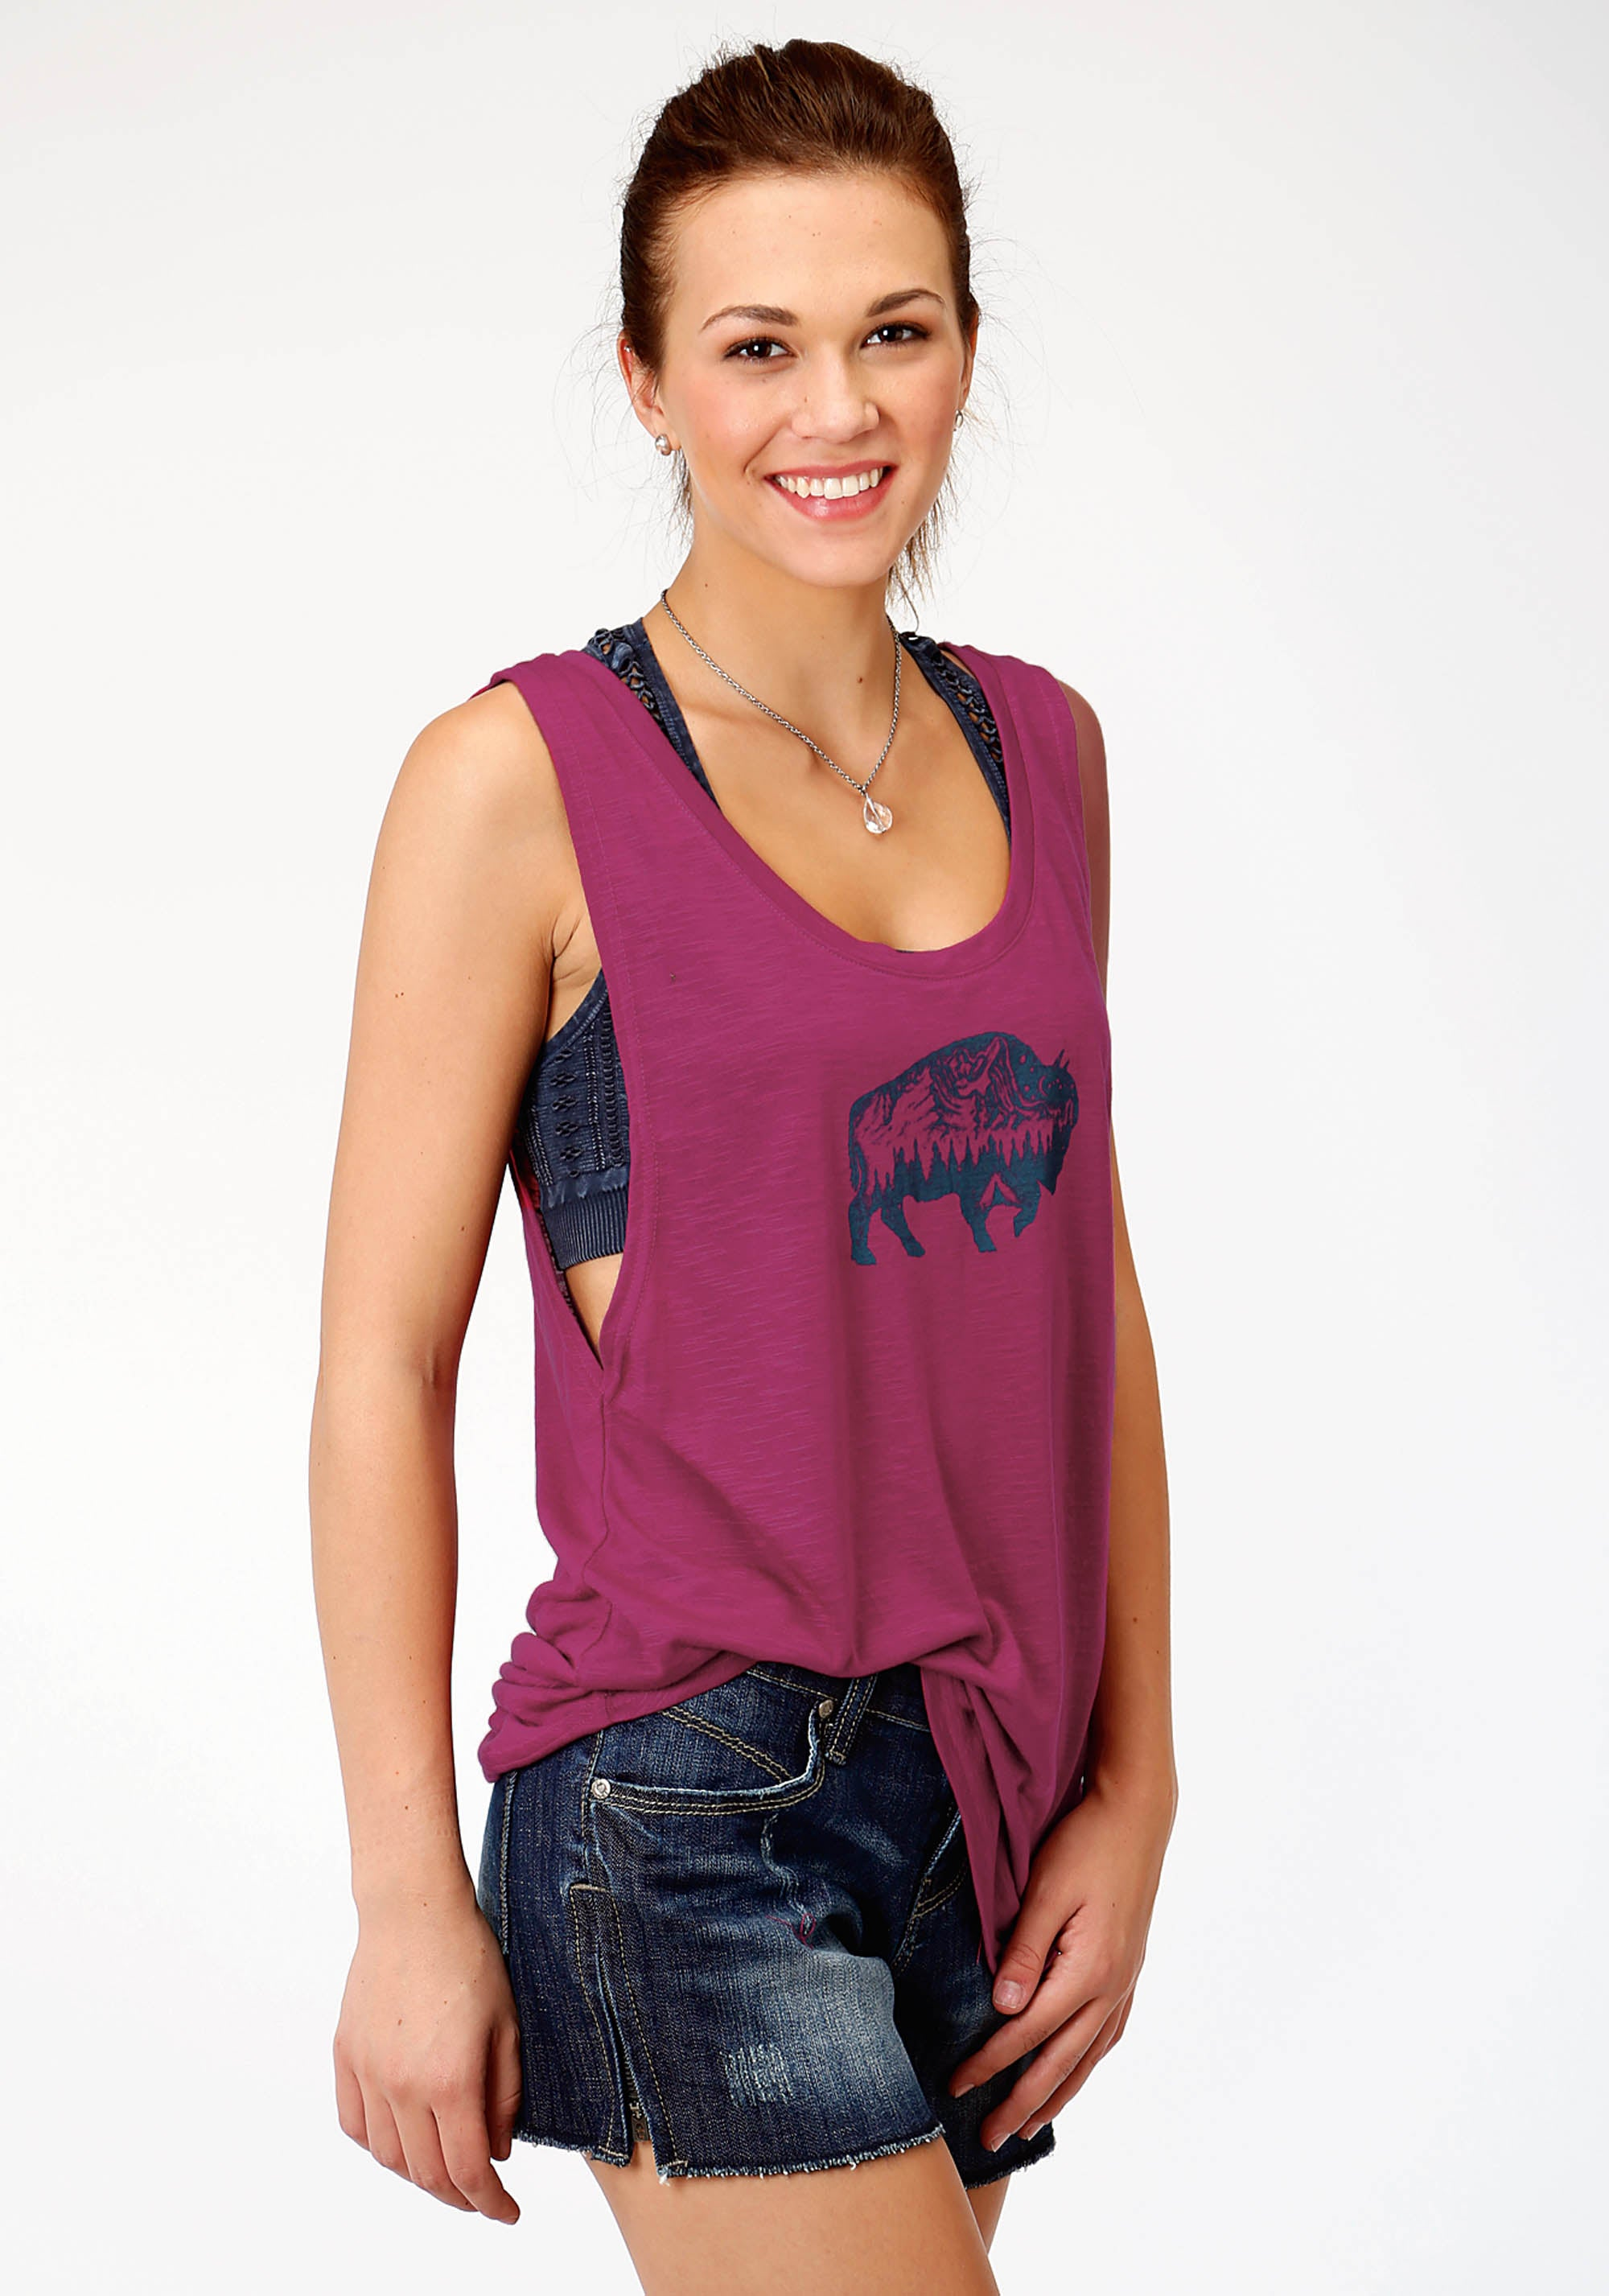 ROPER WOMENS PURPLE 8172 P/R JERSEY TANK FIVE STAR COLLECTION- SUMMER II SLEEVELESS